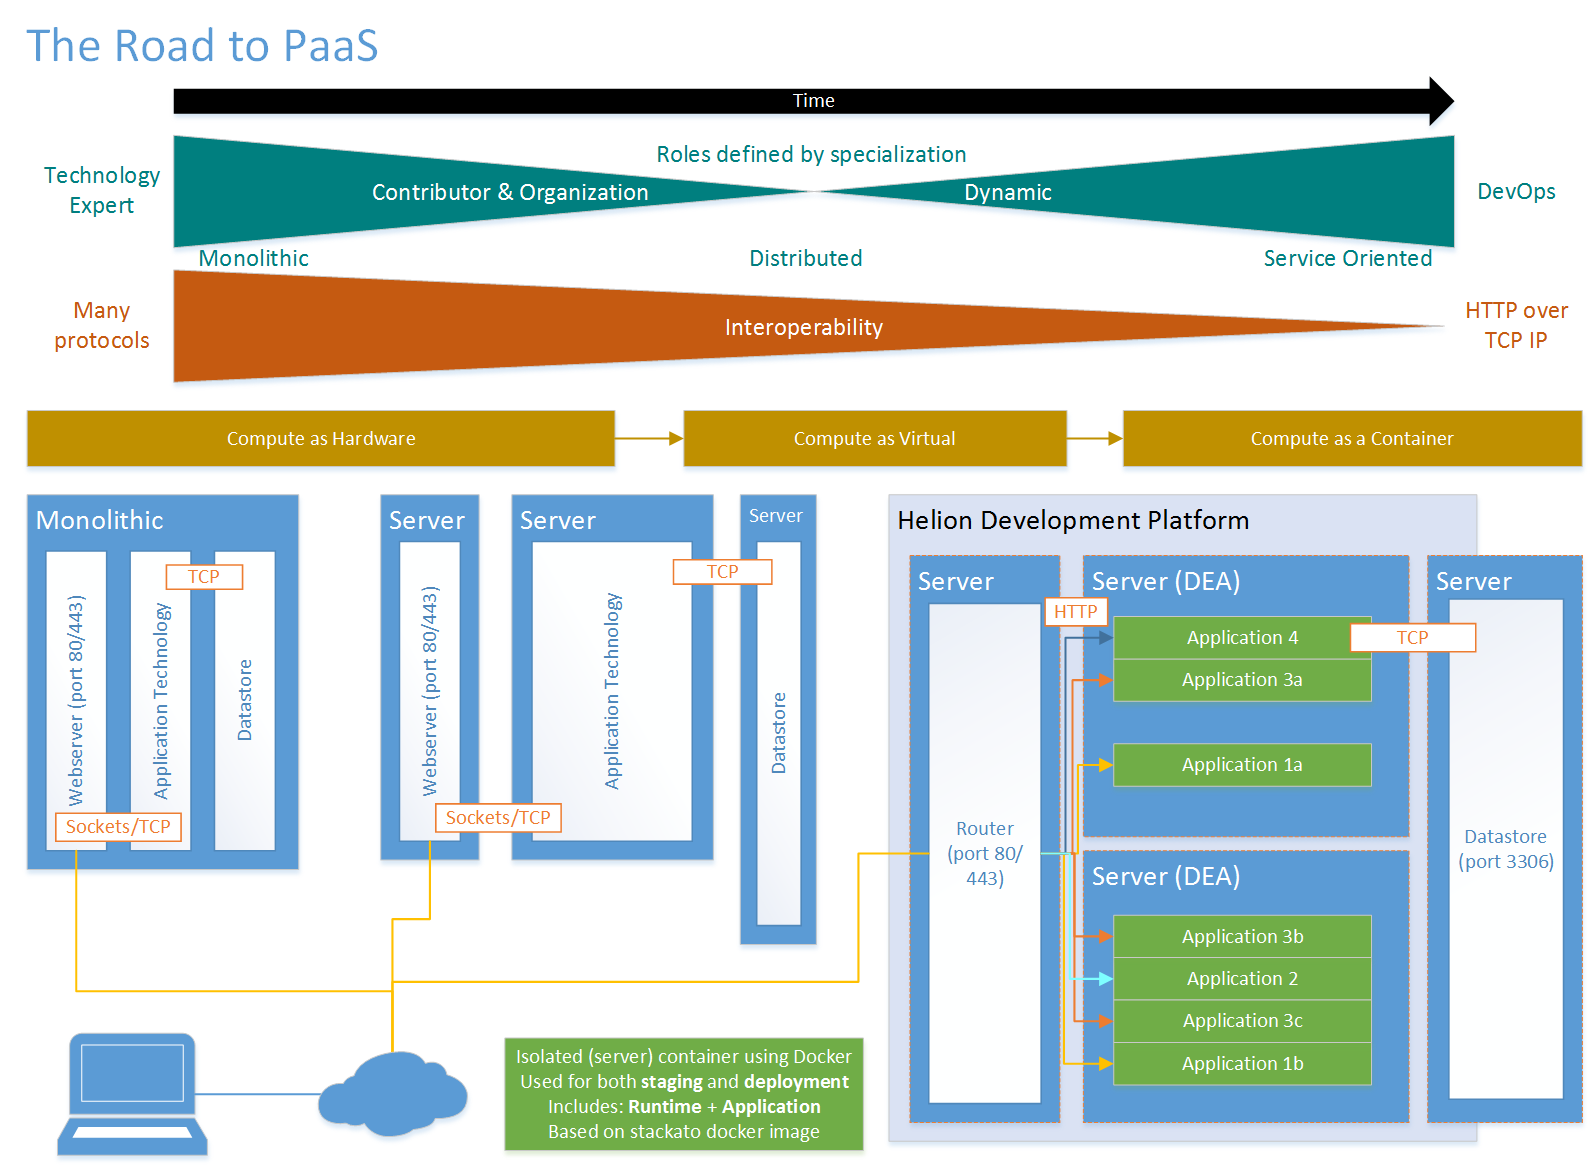 The Road to PaaS